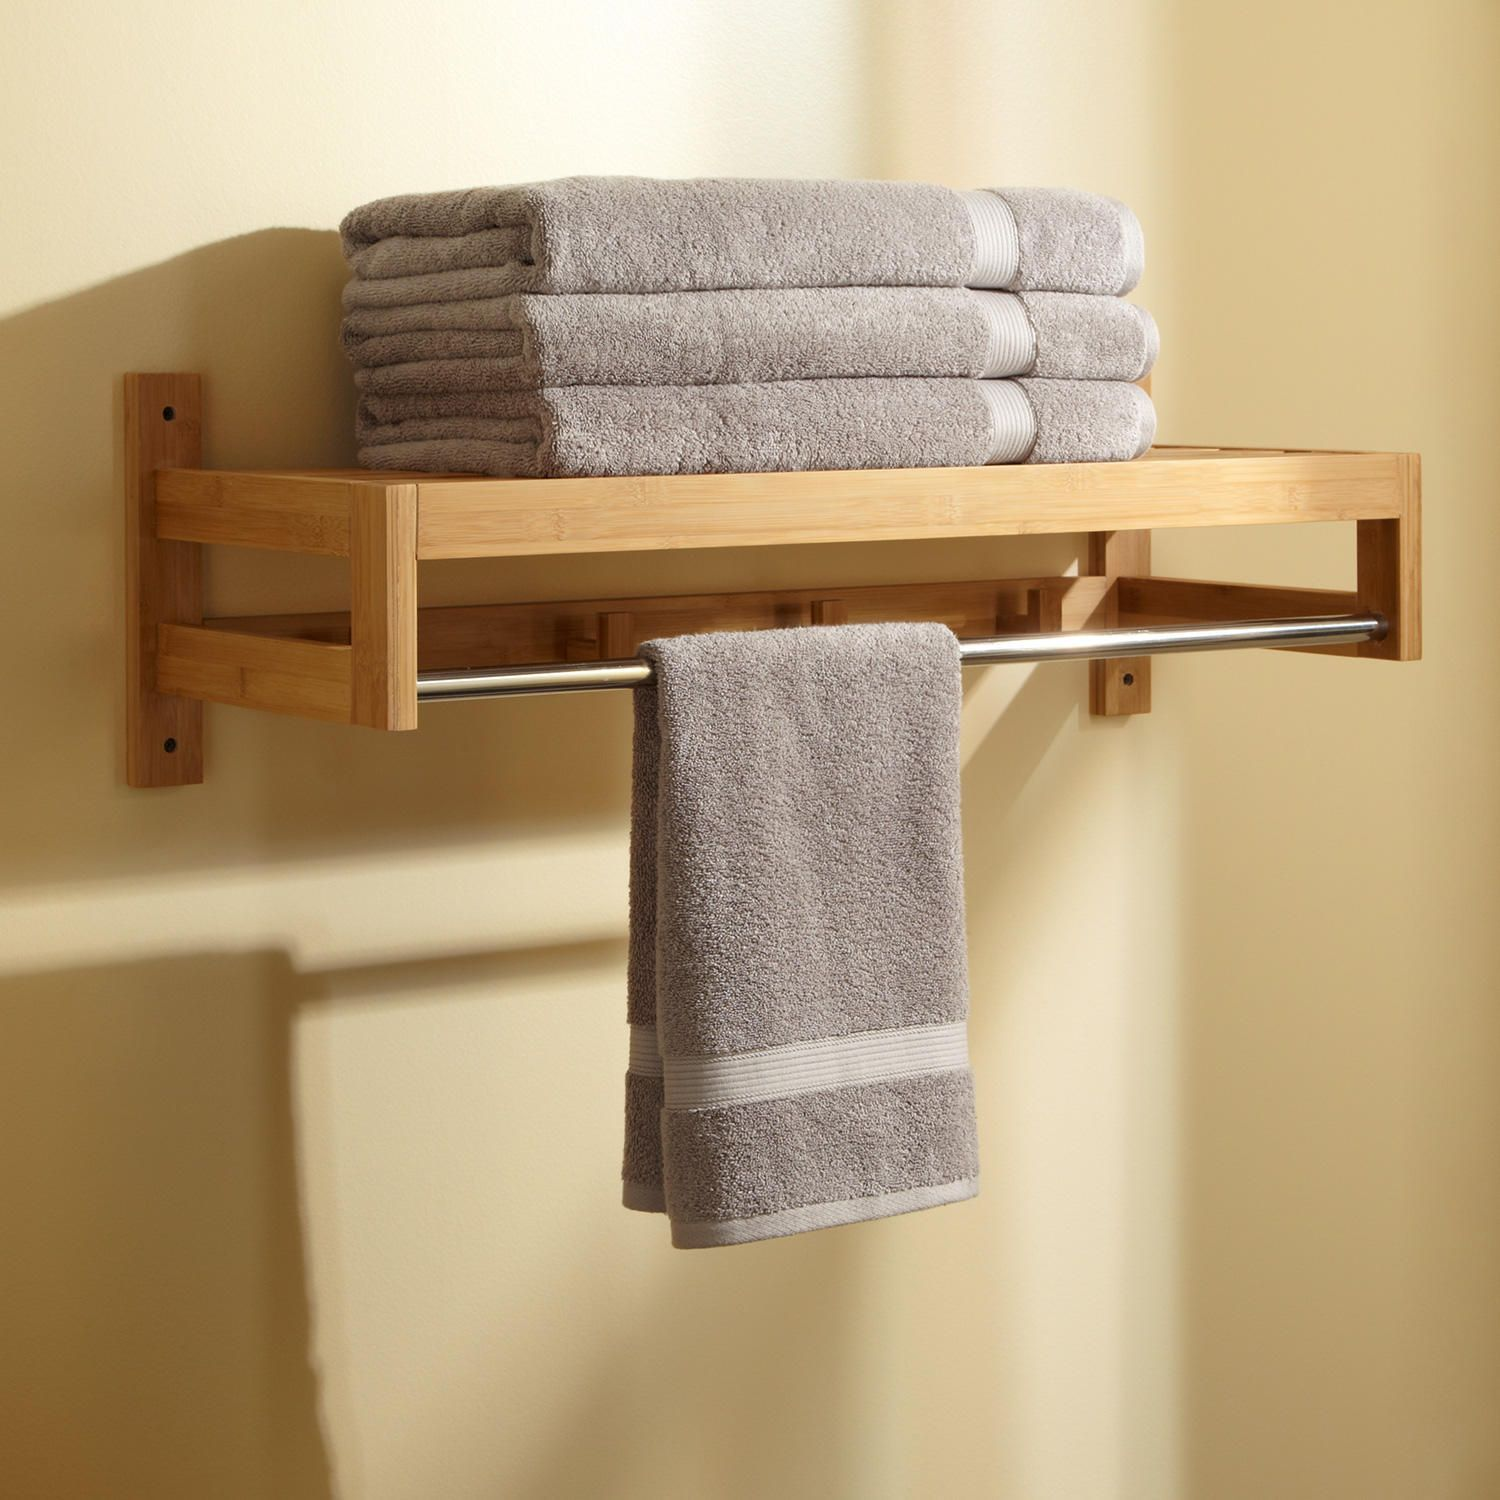 Paten Bamboo Towel Rack with hooks - shelf with hooks below for the ...